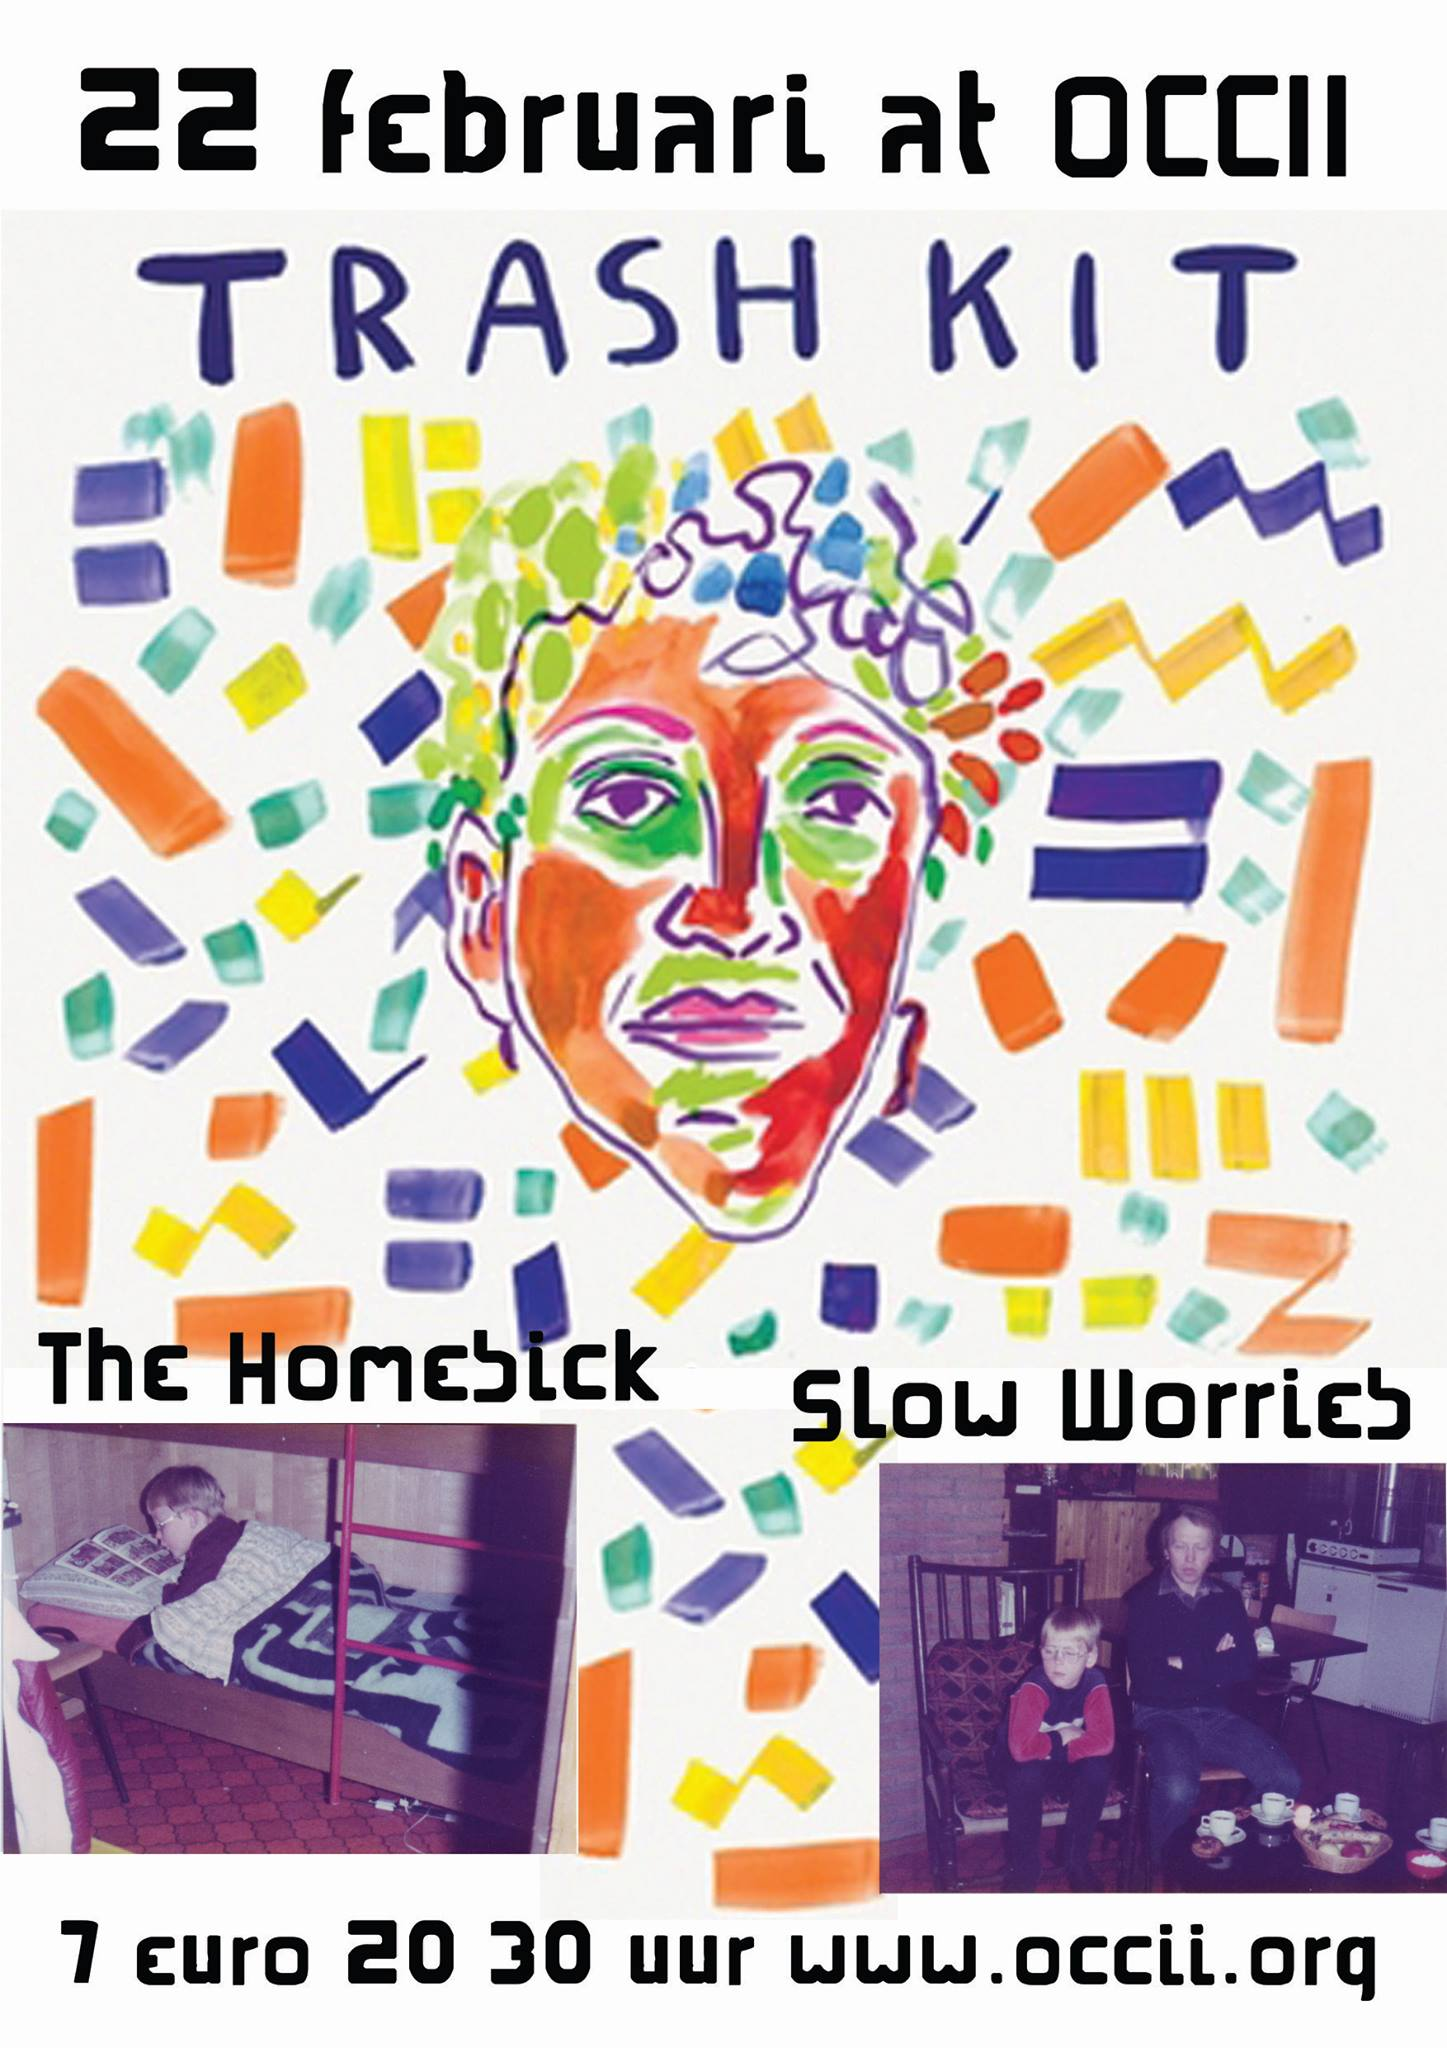 TRASH KIT (uk) + SLOW WORRIES + THE HOMESICK